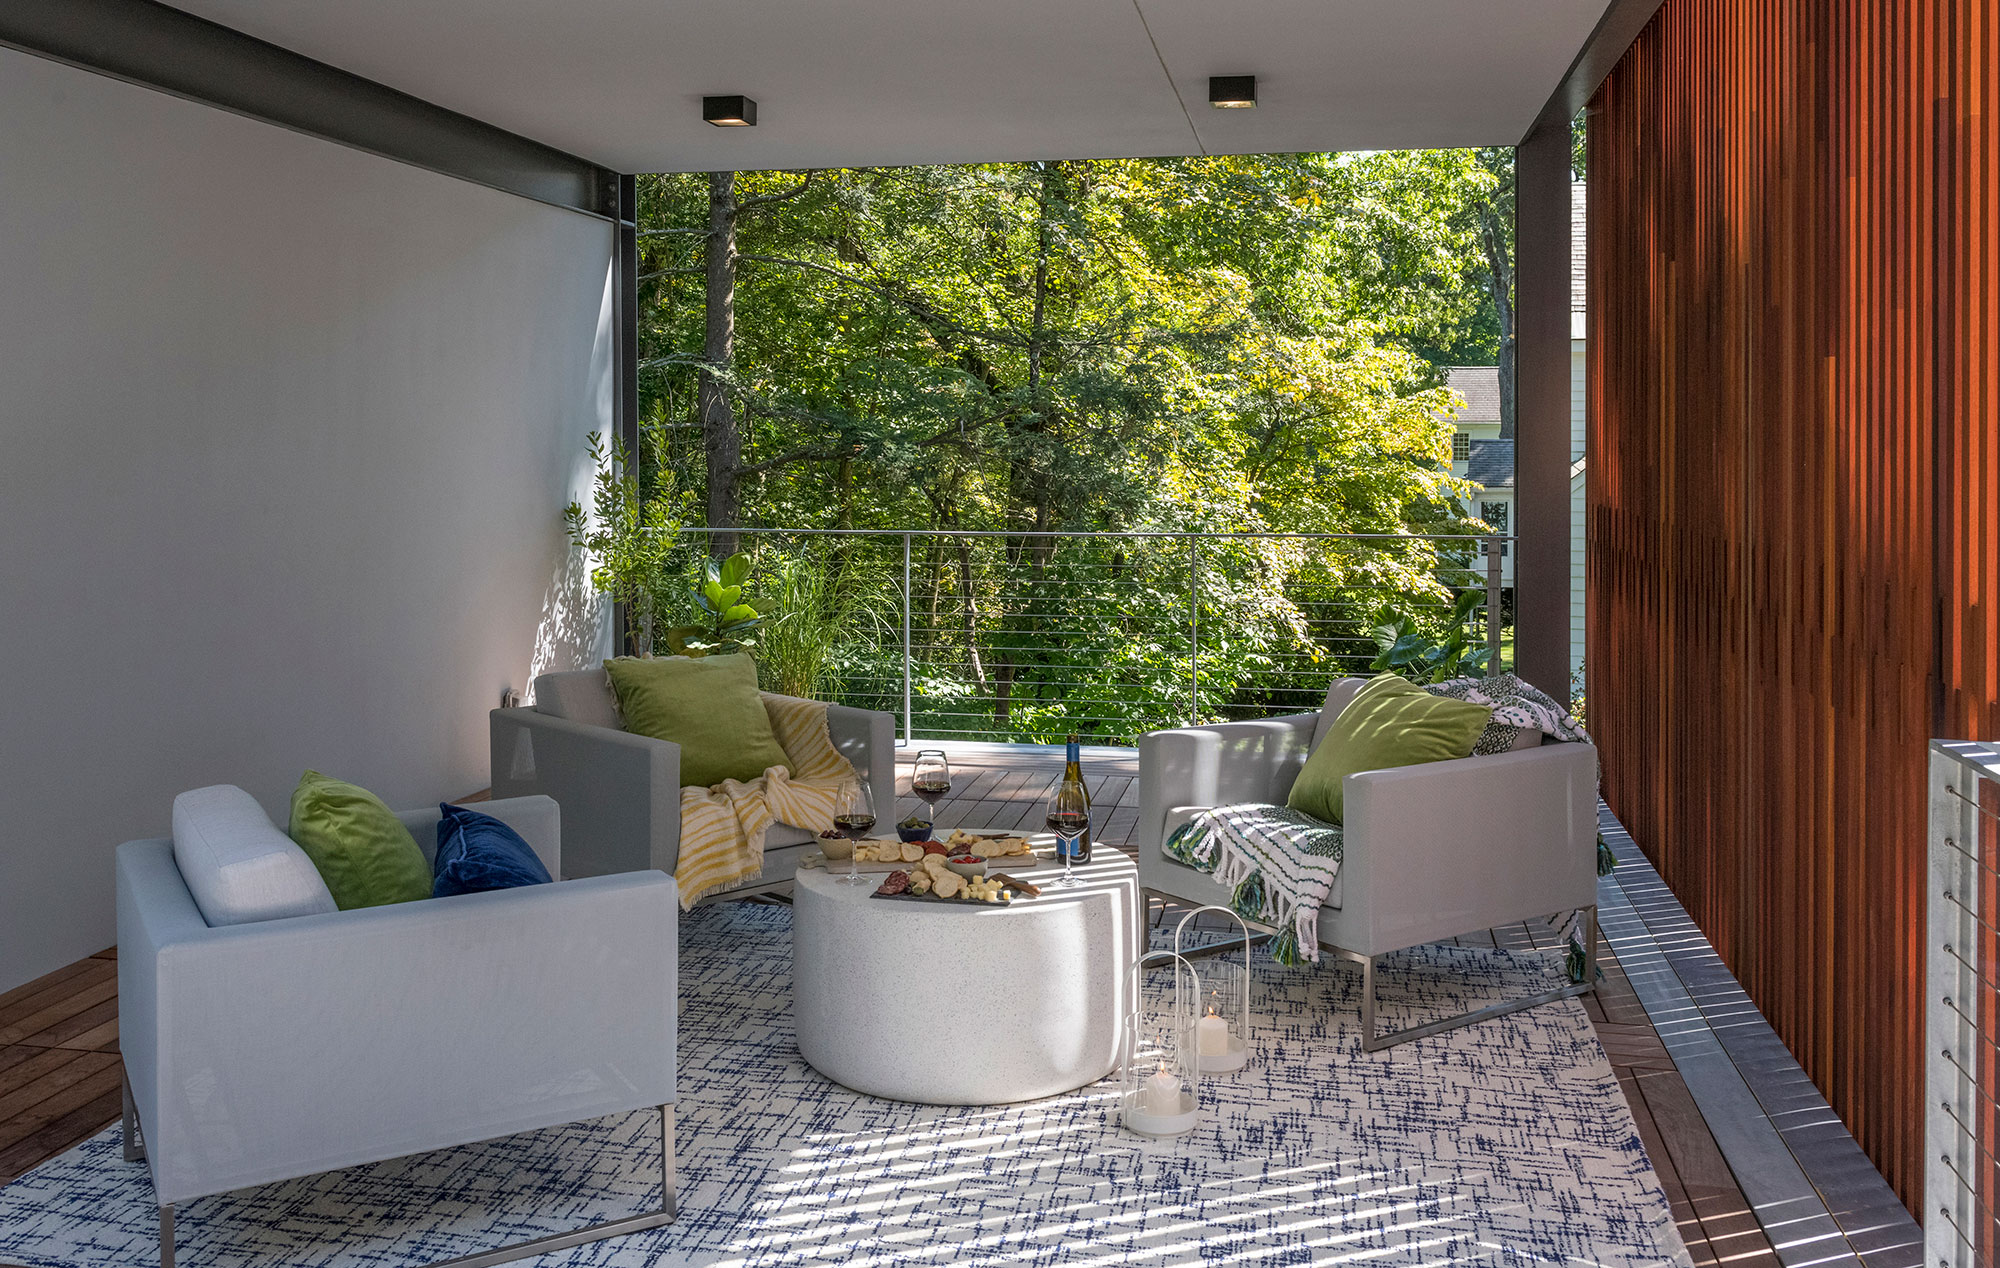 furnished open-air veranda with privacy wood screen